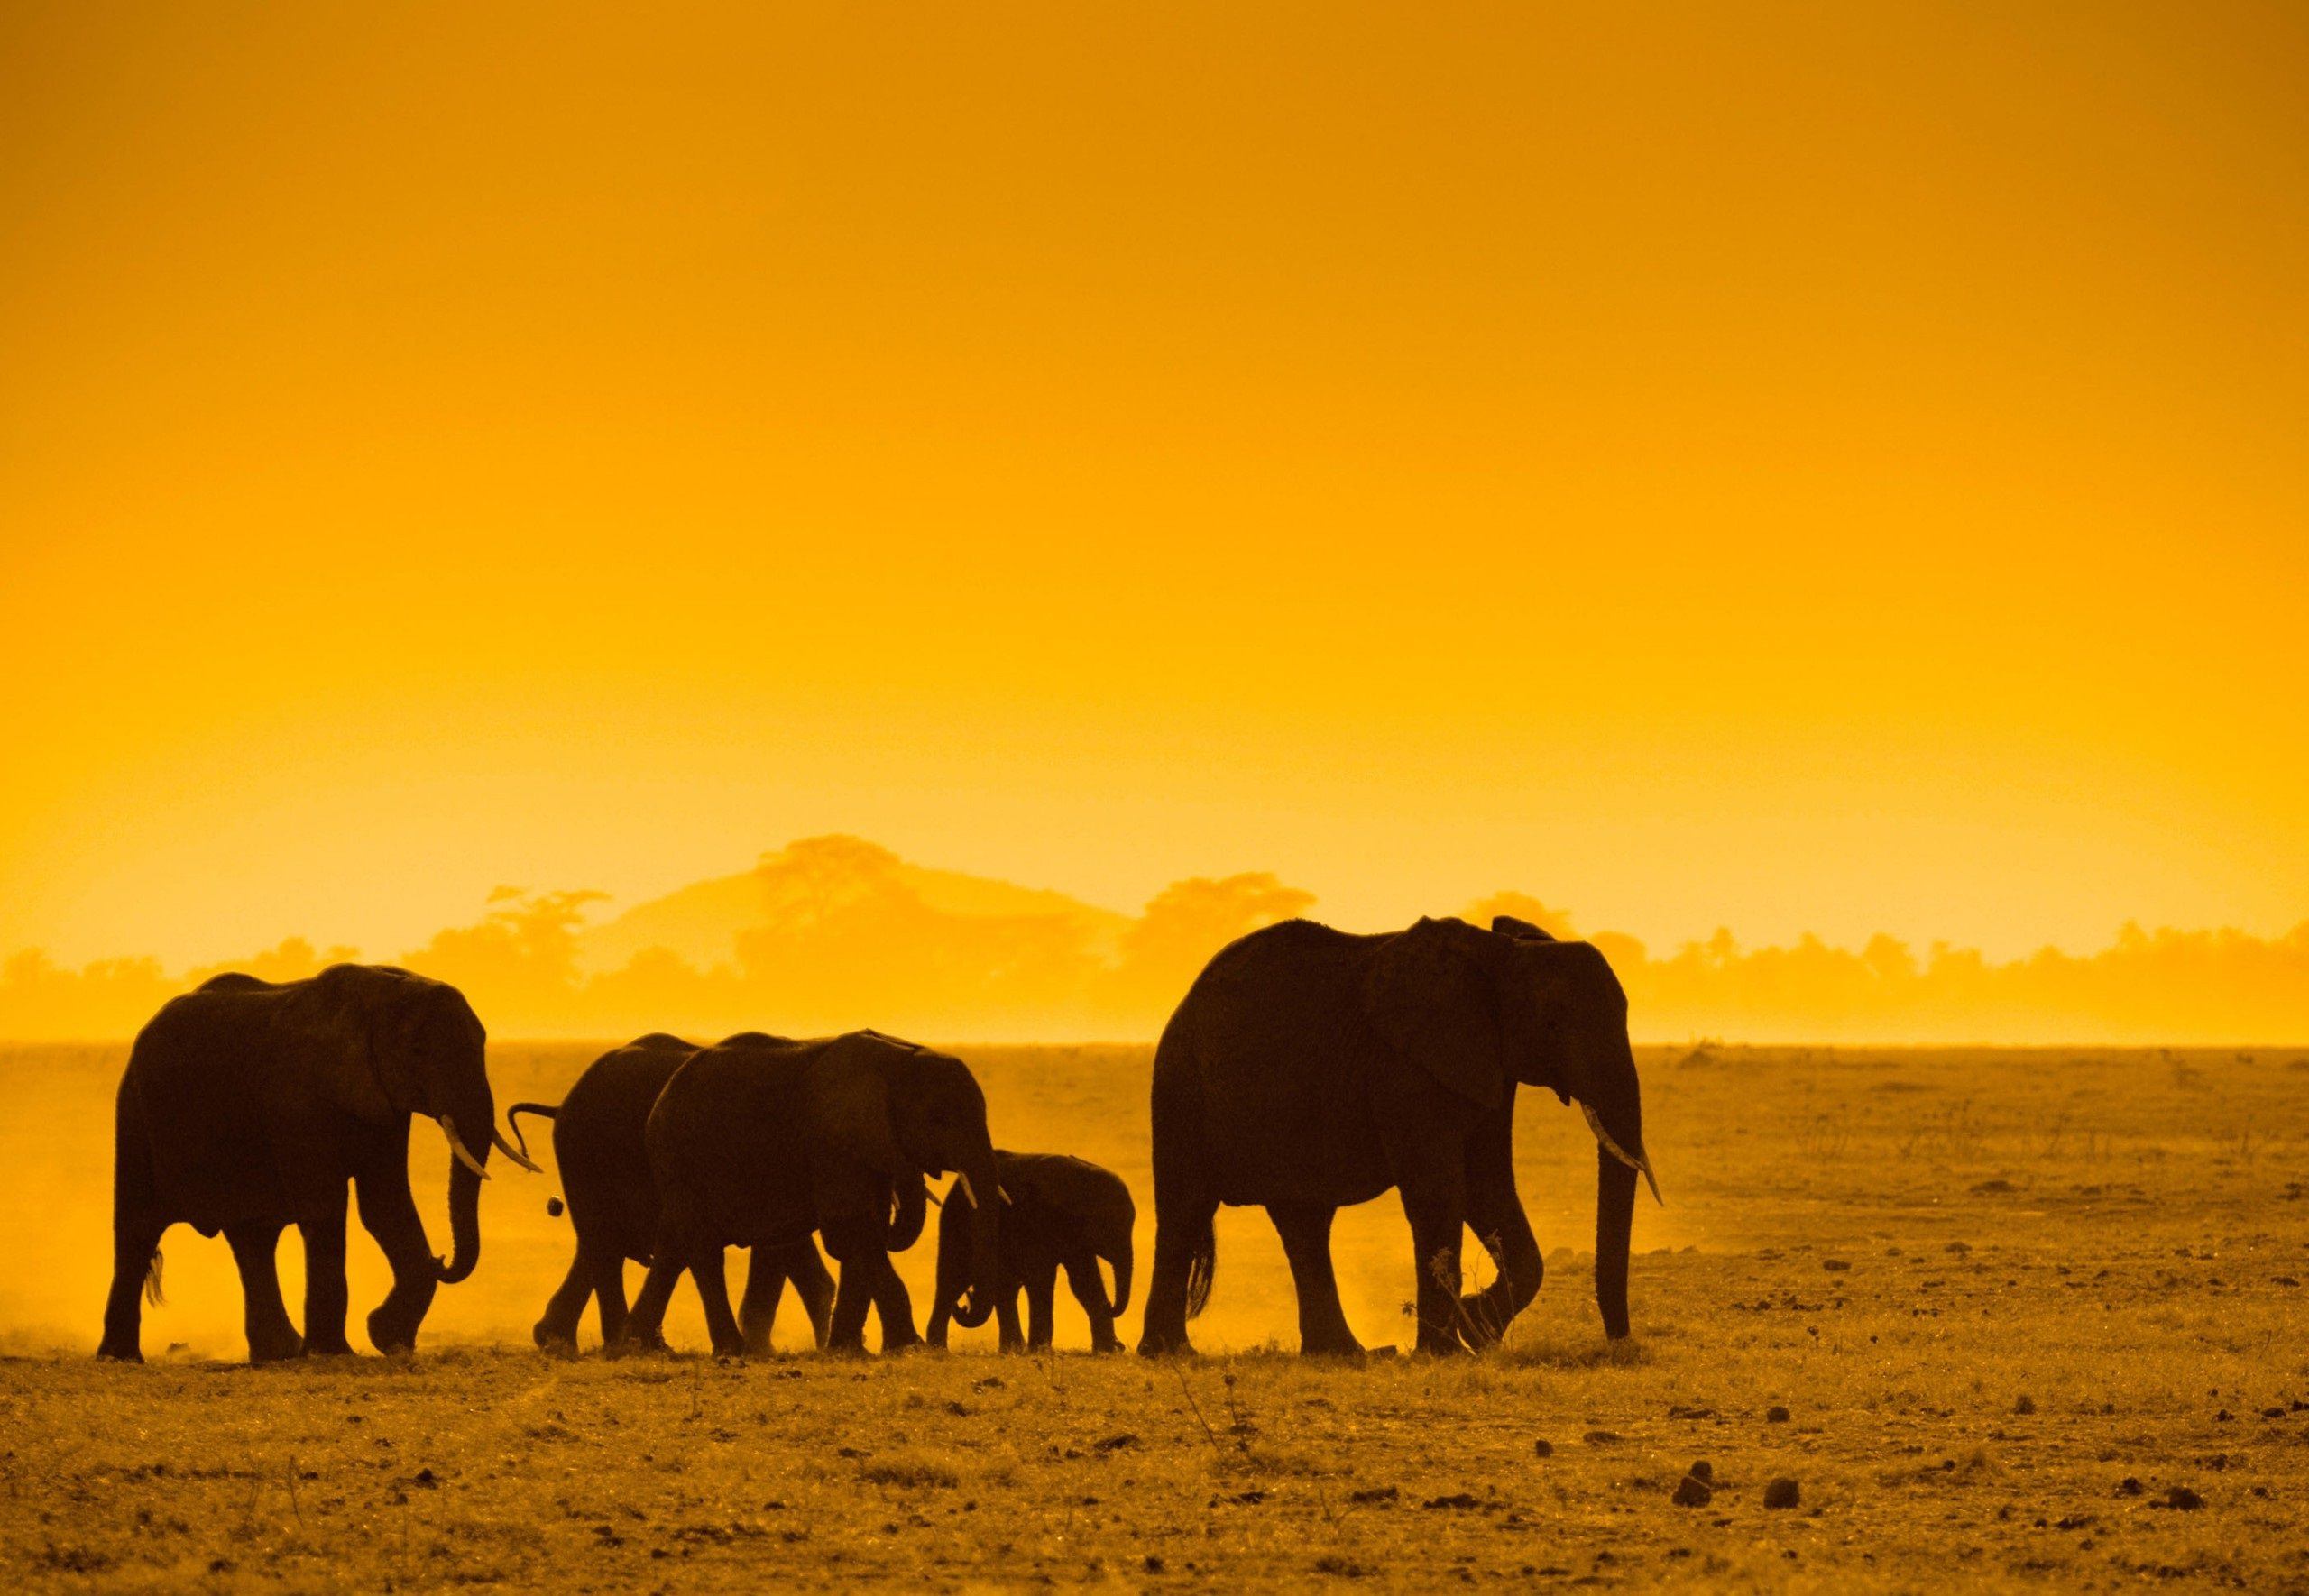 Elephants In The Living Room Home Page Elephant Life Save The